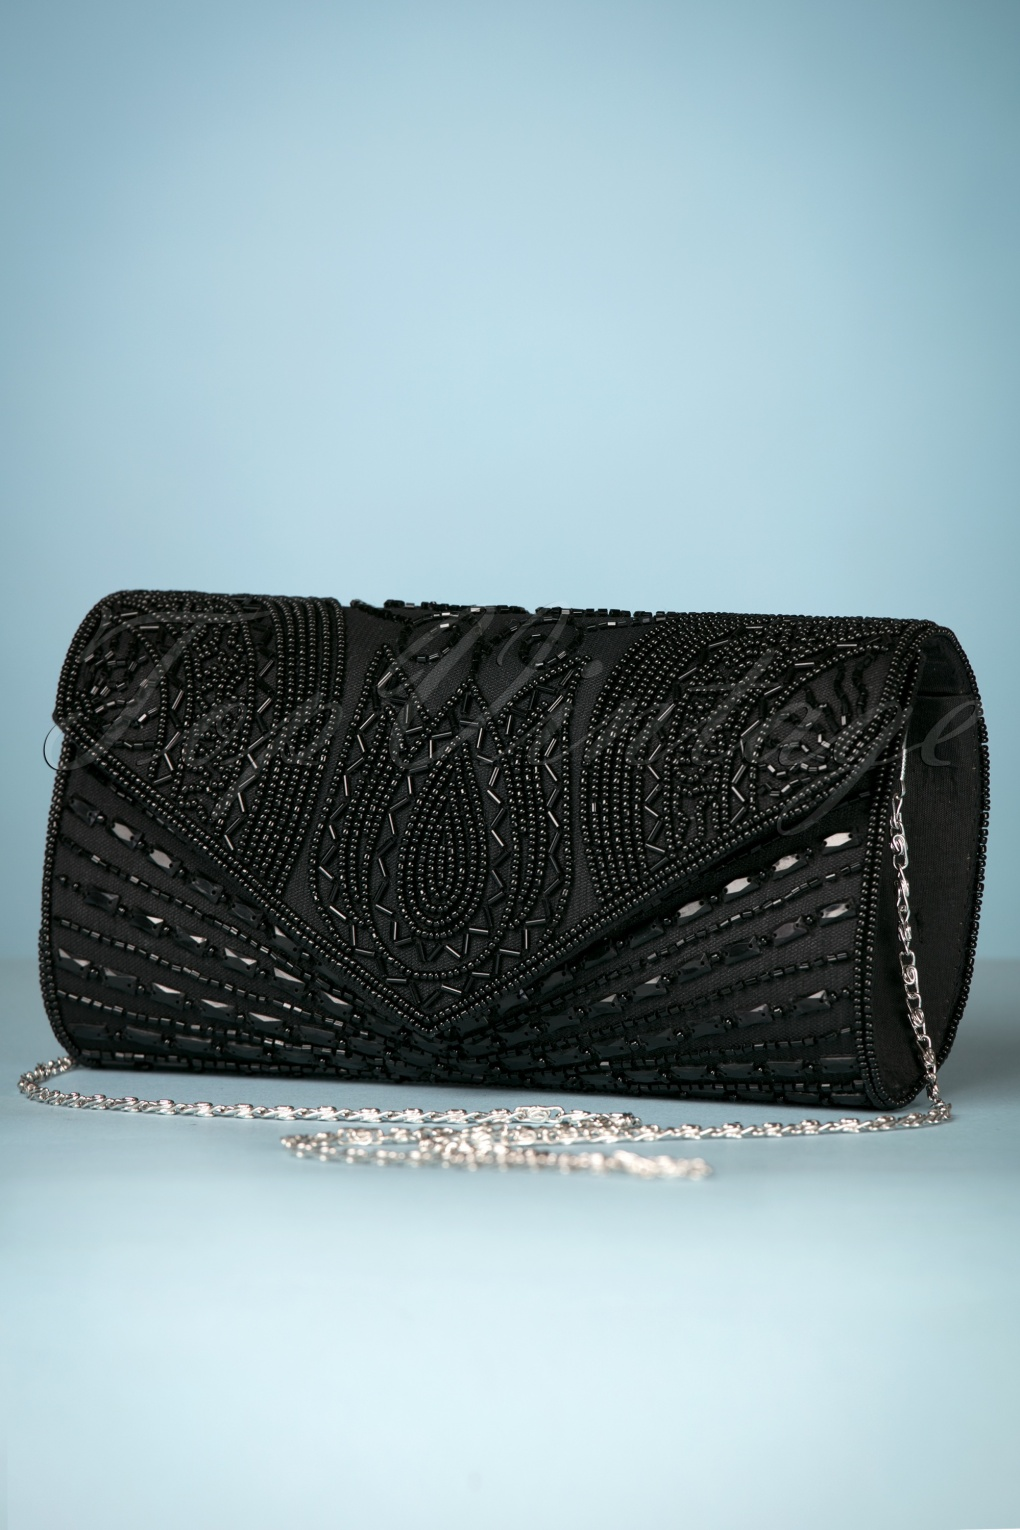 1920s Style Purses, Flapper Bags, Handbags 20s Beatrice Beaded Clutch in Black £31.21 AT vintagedancer.com